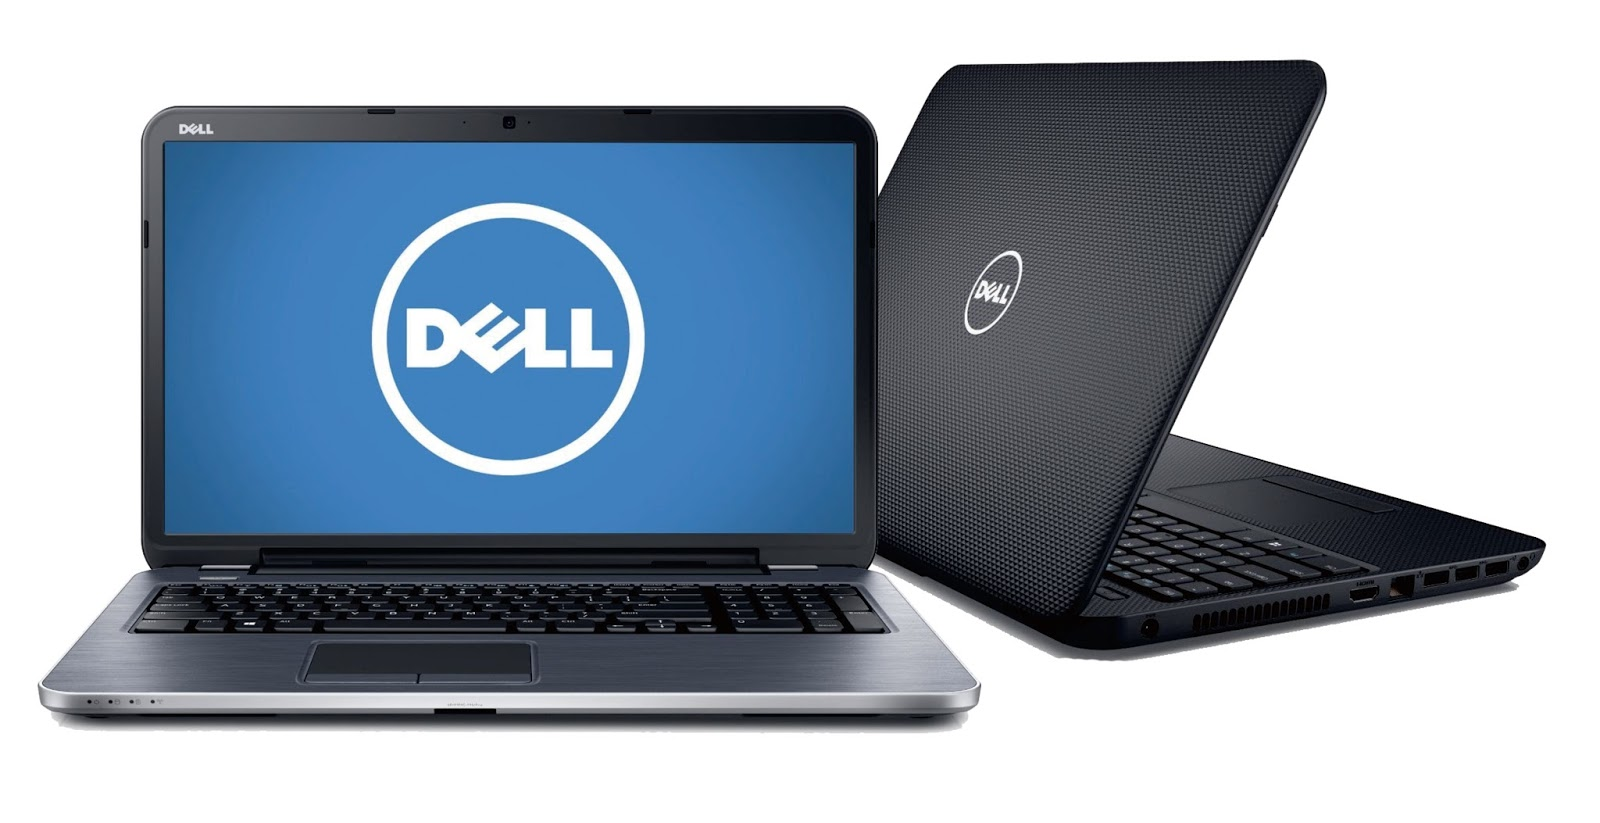 Dell Inspiron M4040 Notebook 1703 WLAN Drivers Download (2019)